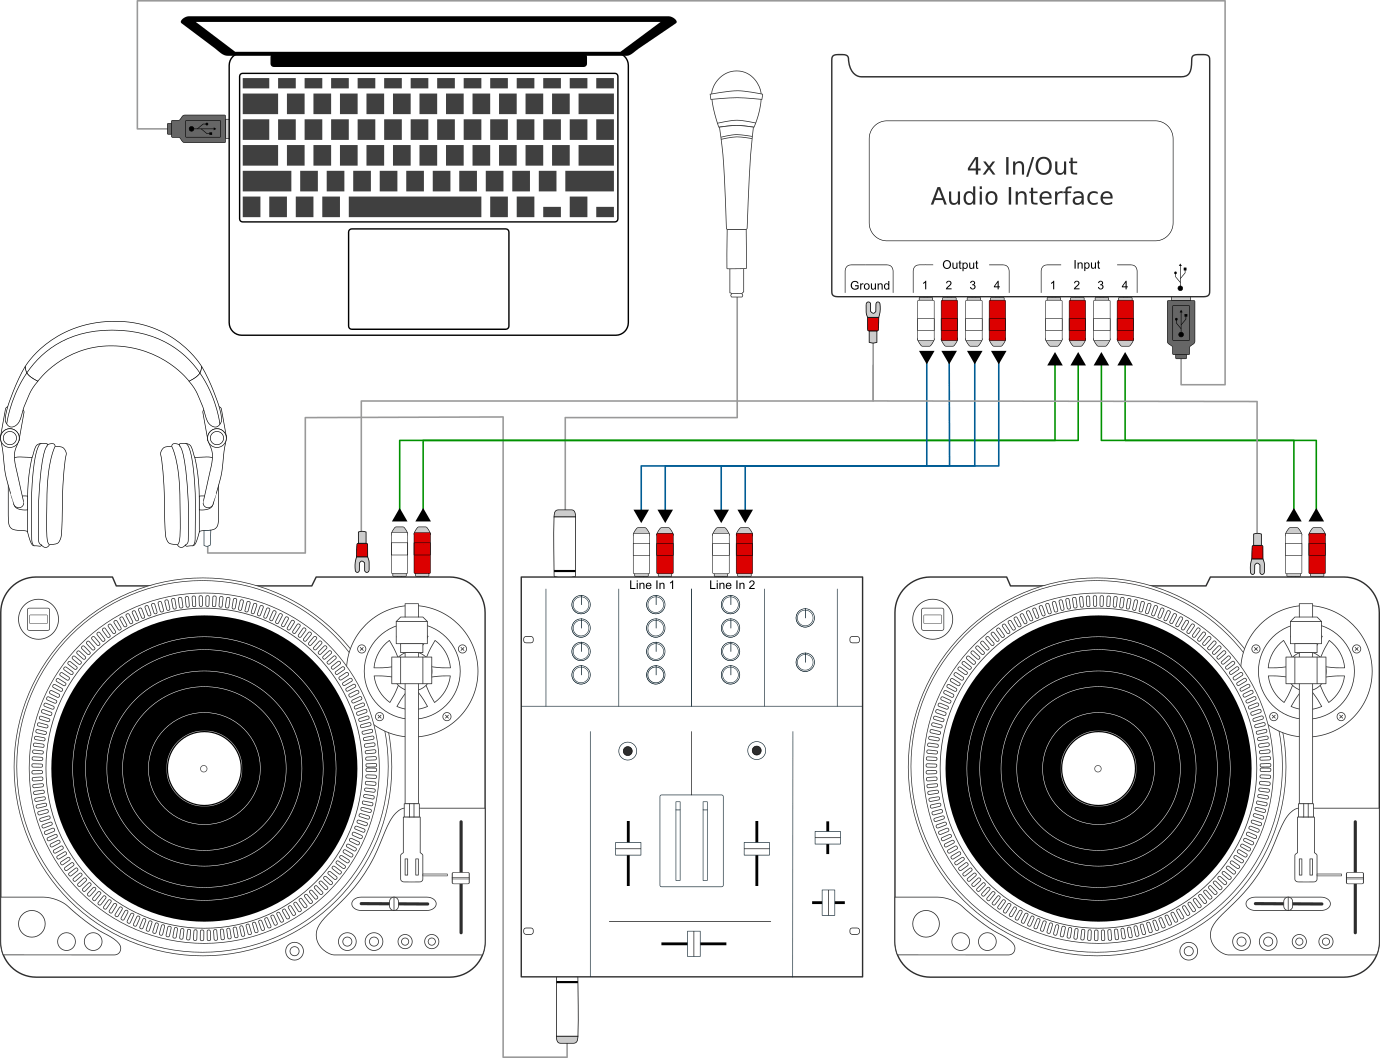 hight resolution of using mixxx together with turntables and external mixer